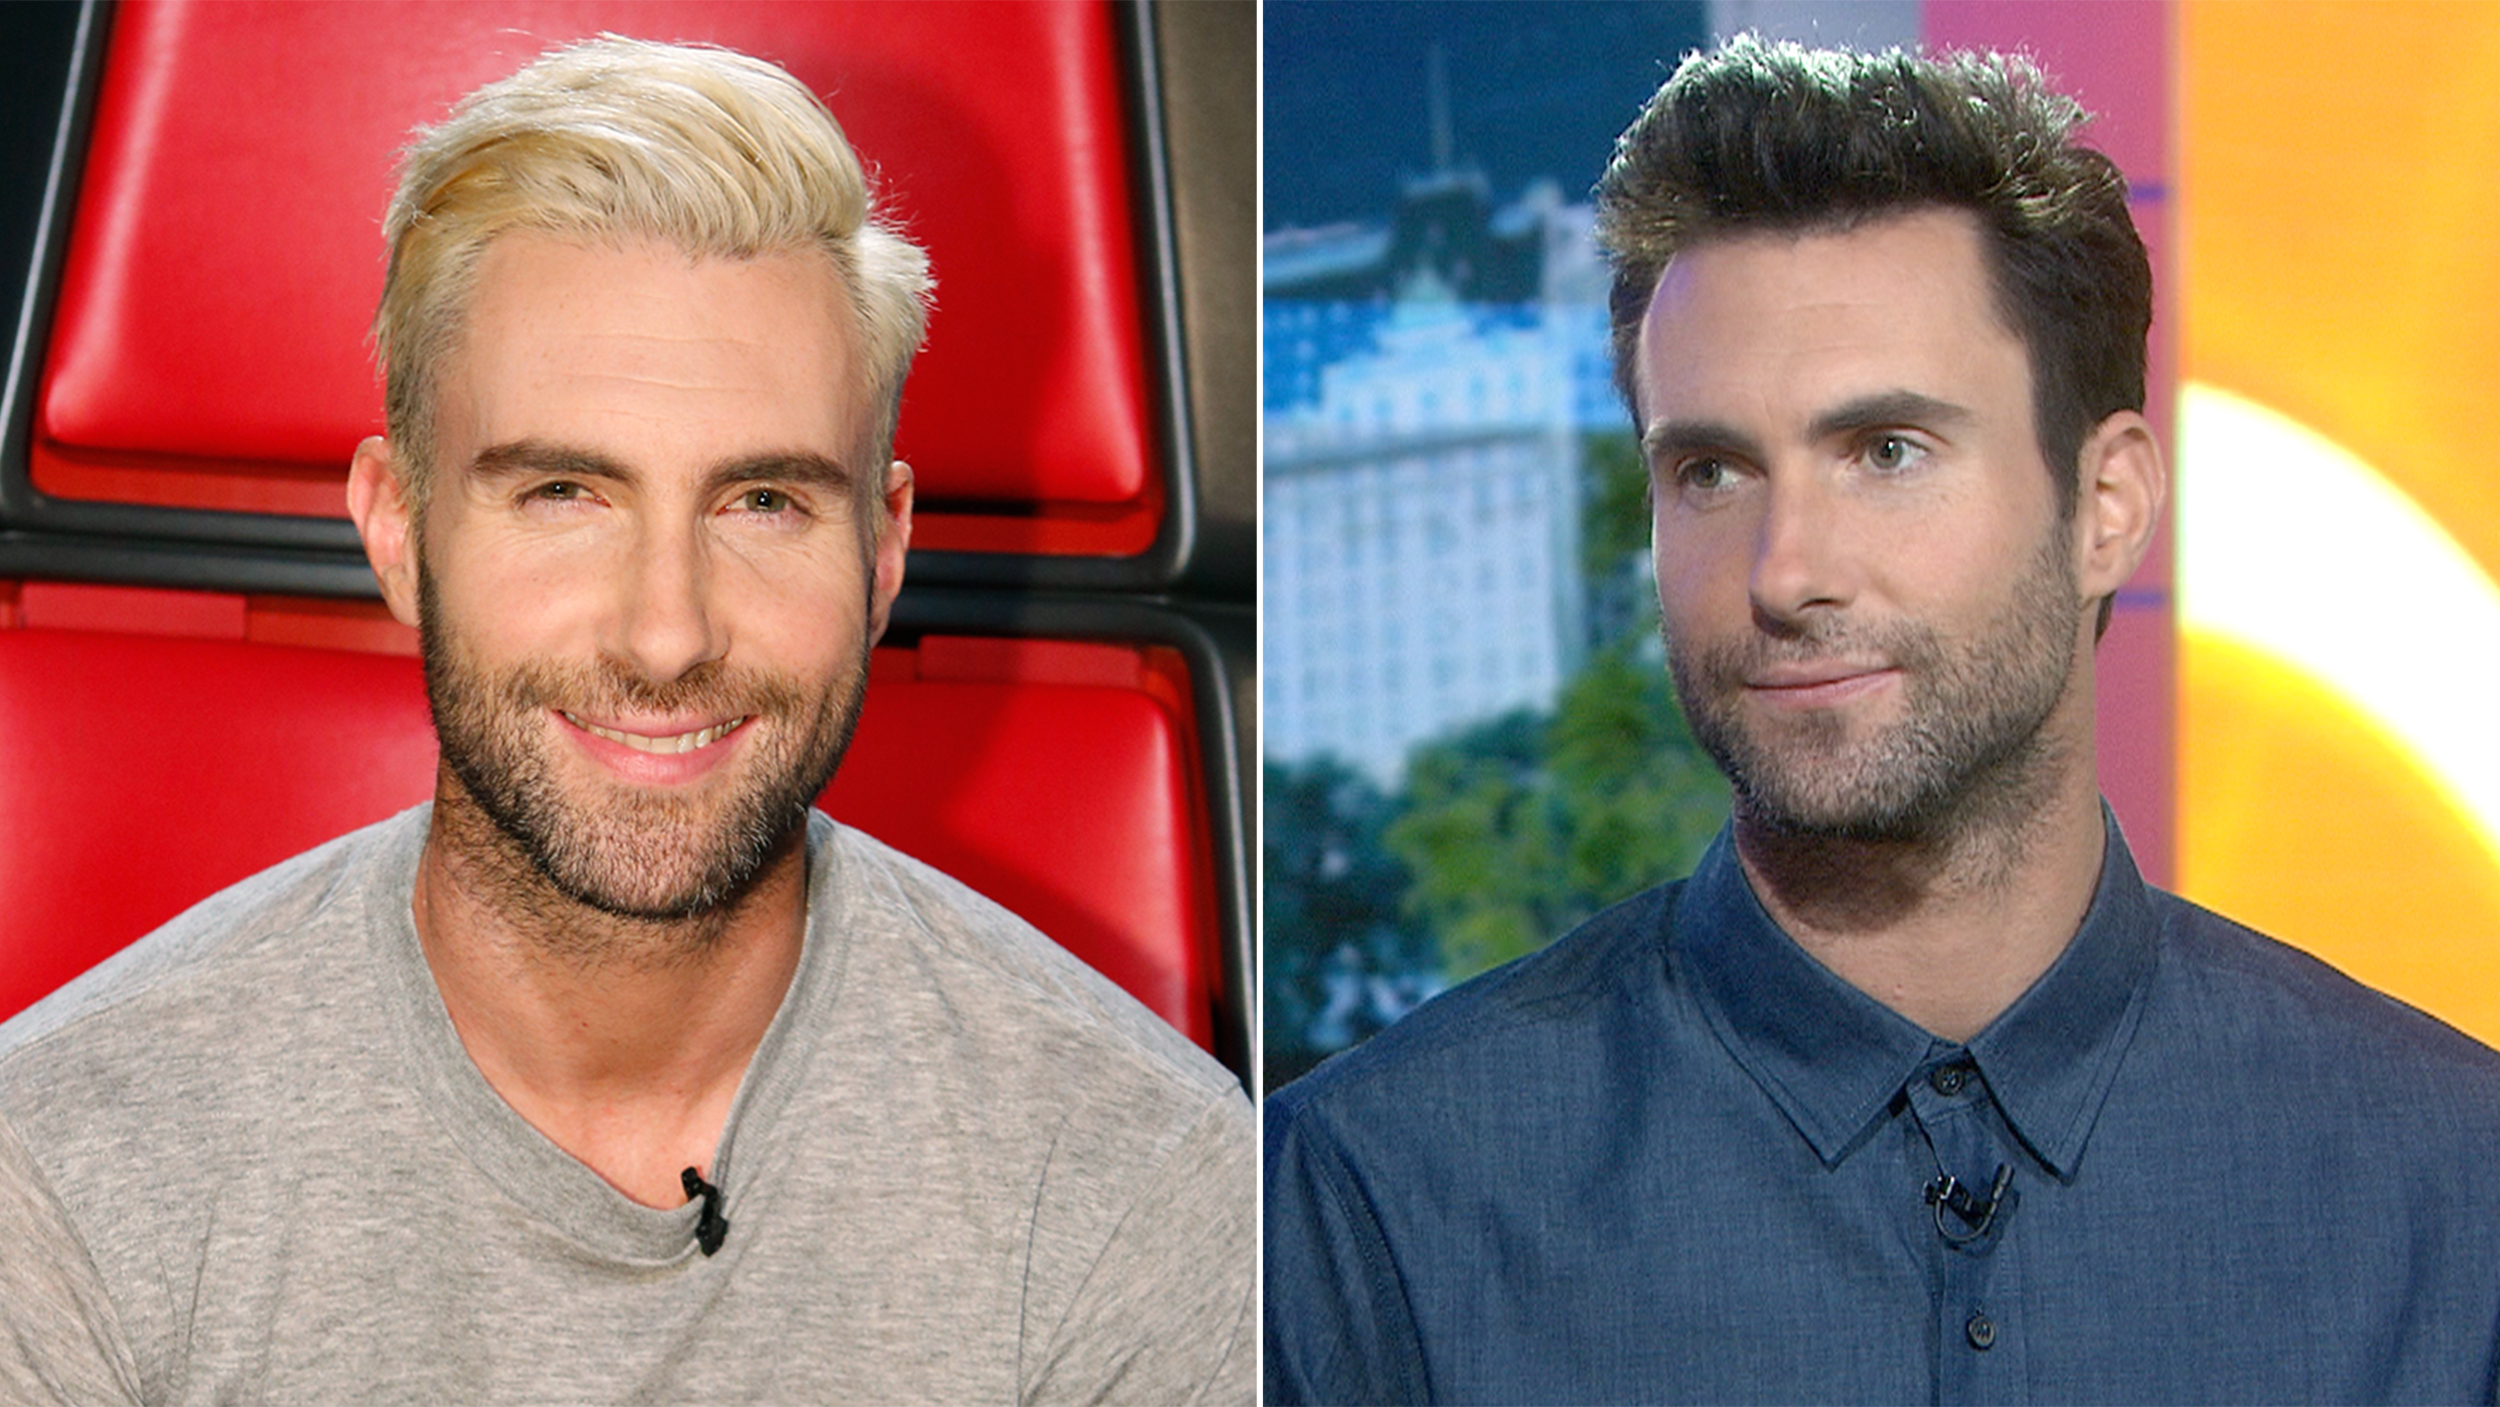 As A Blond Adam Levine Did Not Have More Fun No One